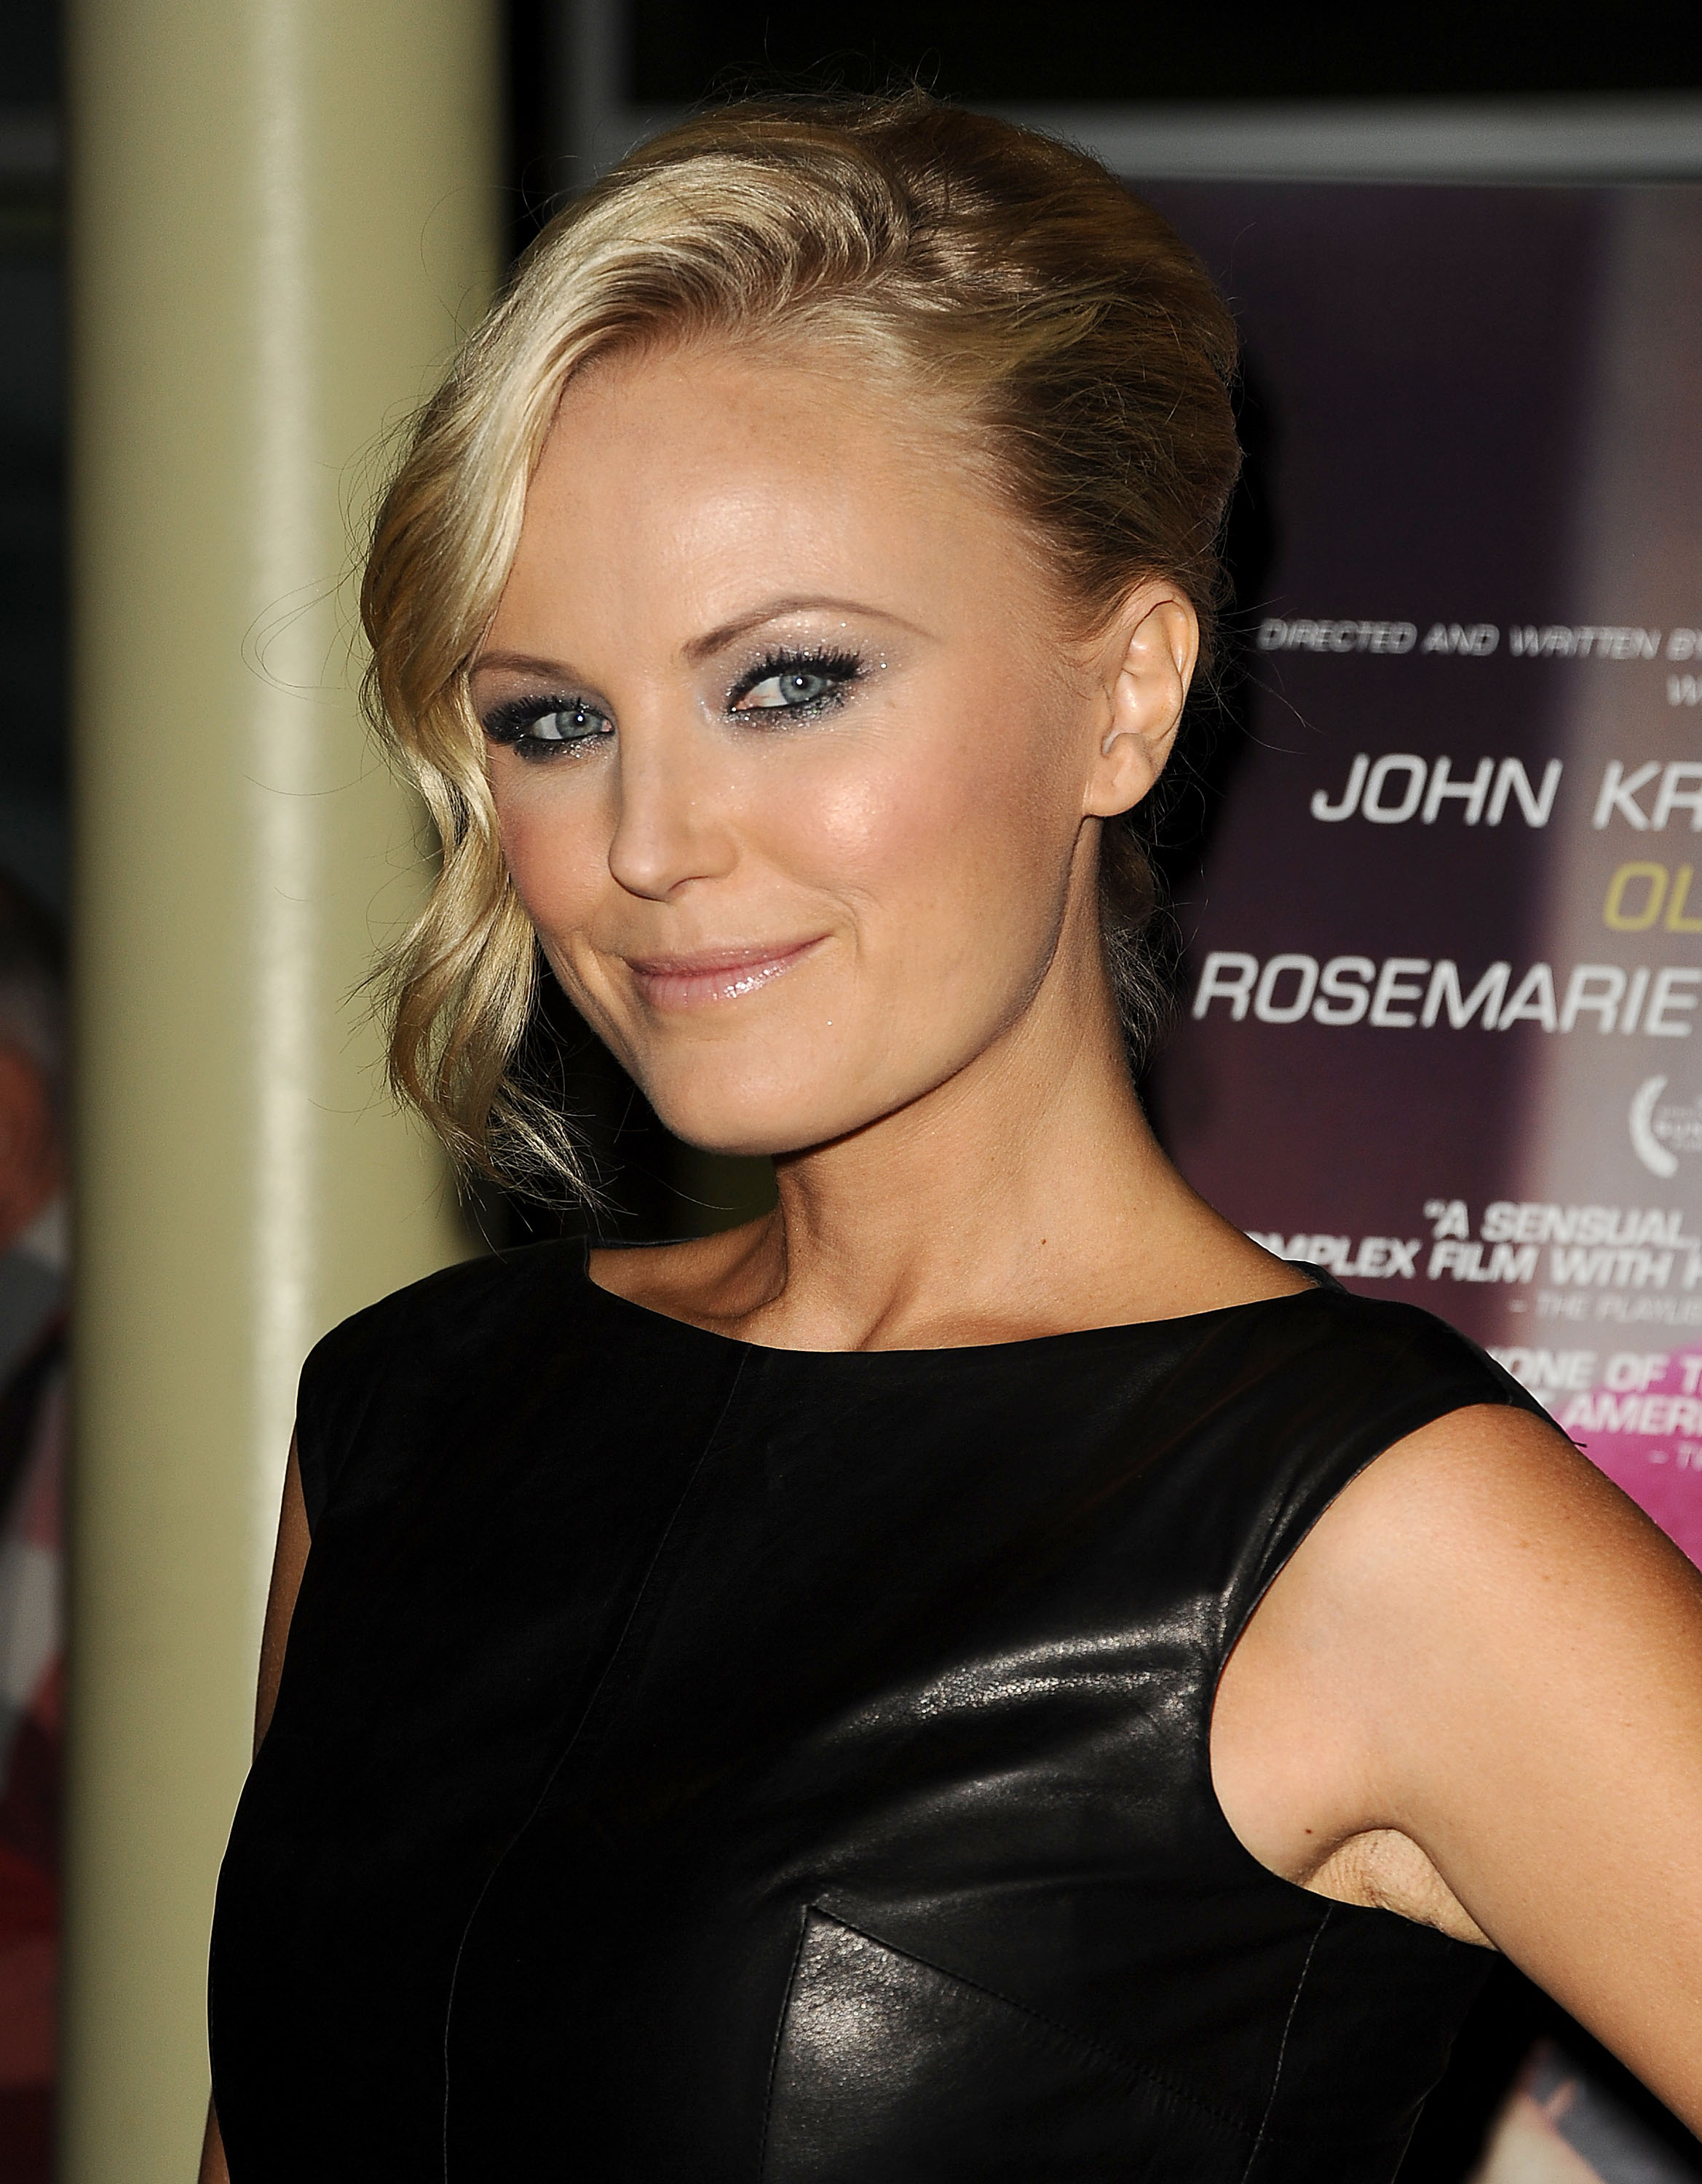 Malin Akerman gave a sexy smirk upon her arrival.